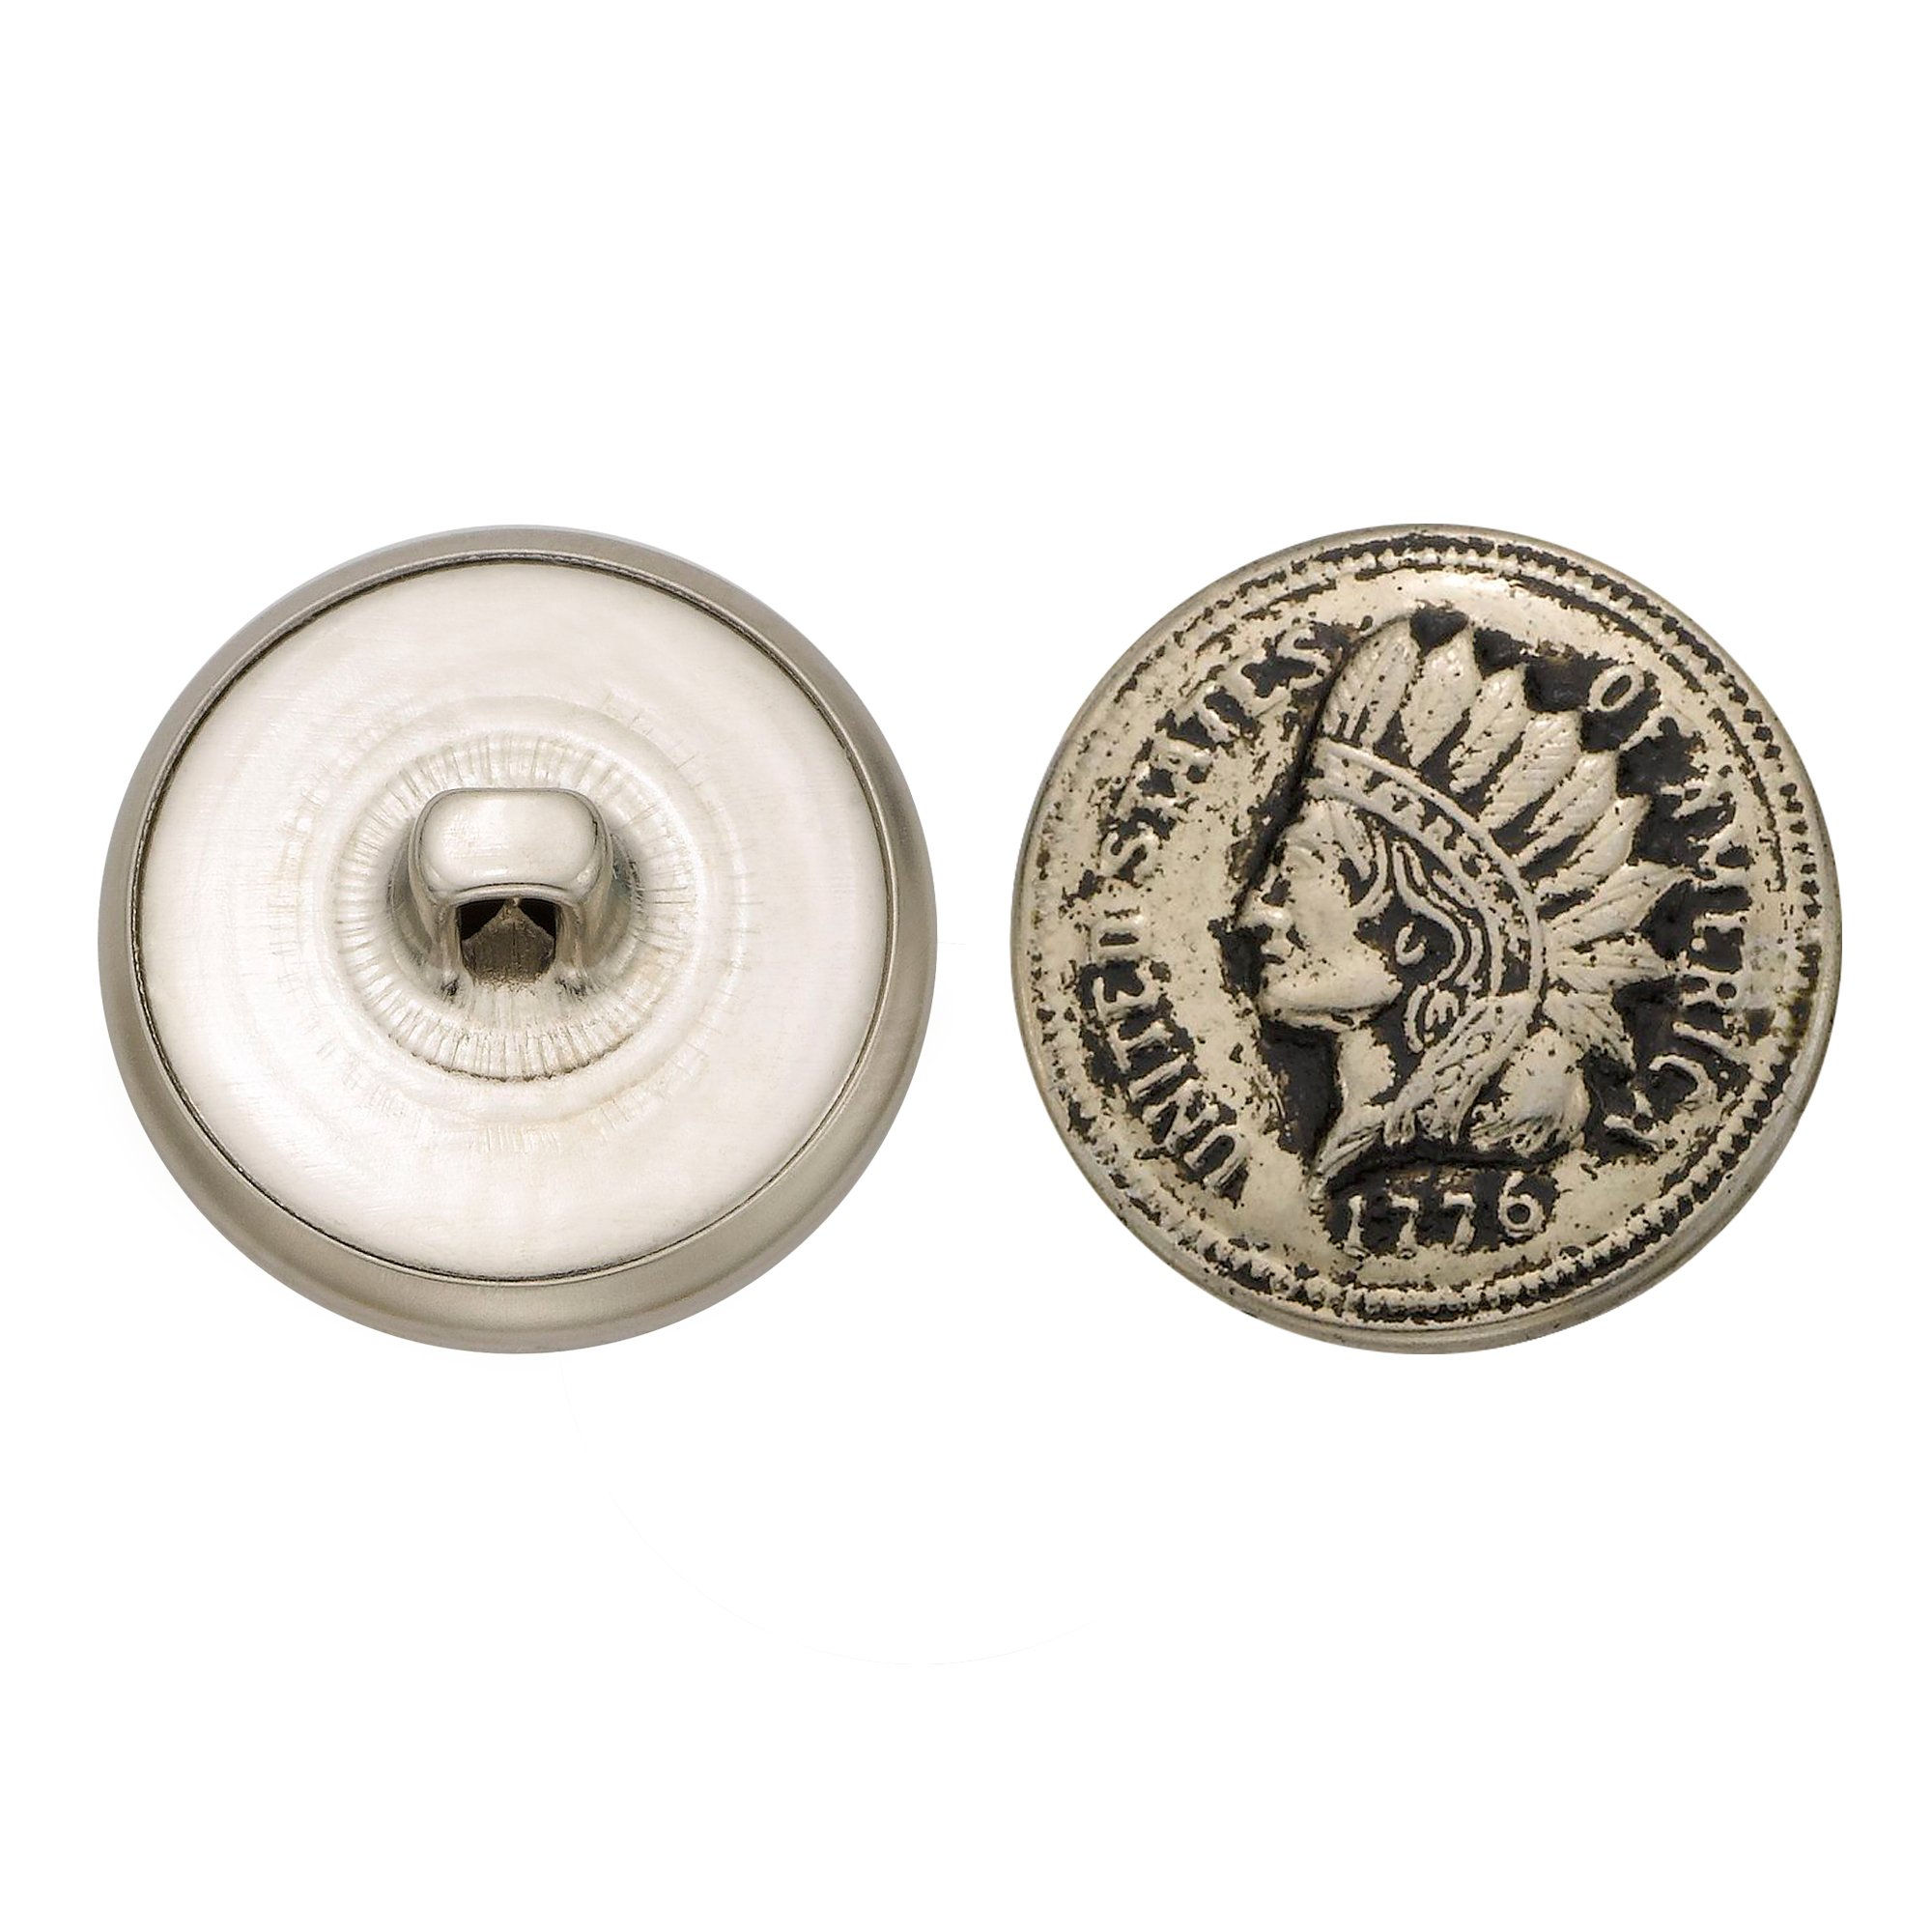 C&C Metal Products 5201 Indian Head Metal Button, Size 36 Ligne, Antique Nickel, 36-Pack